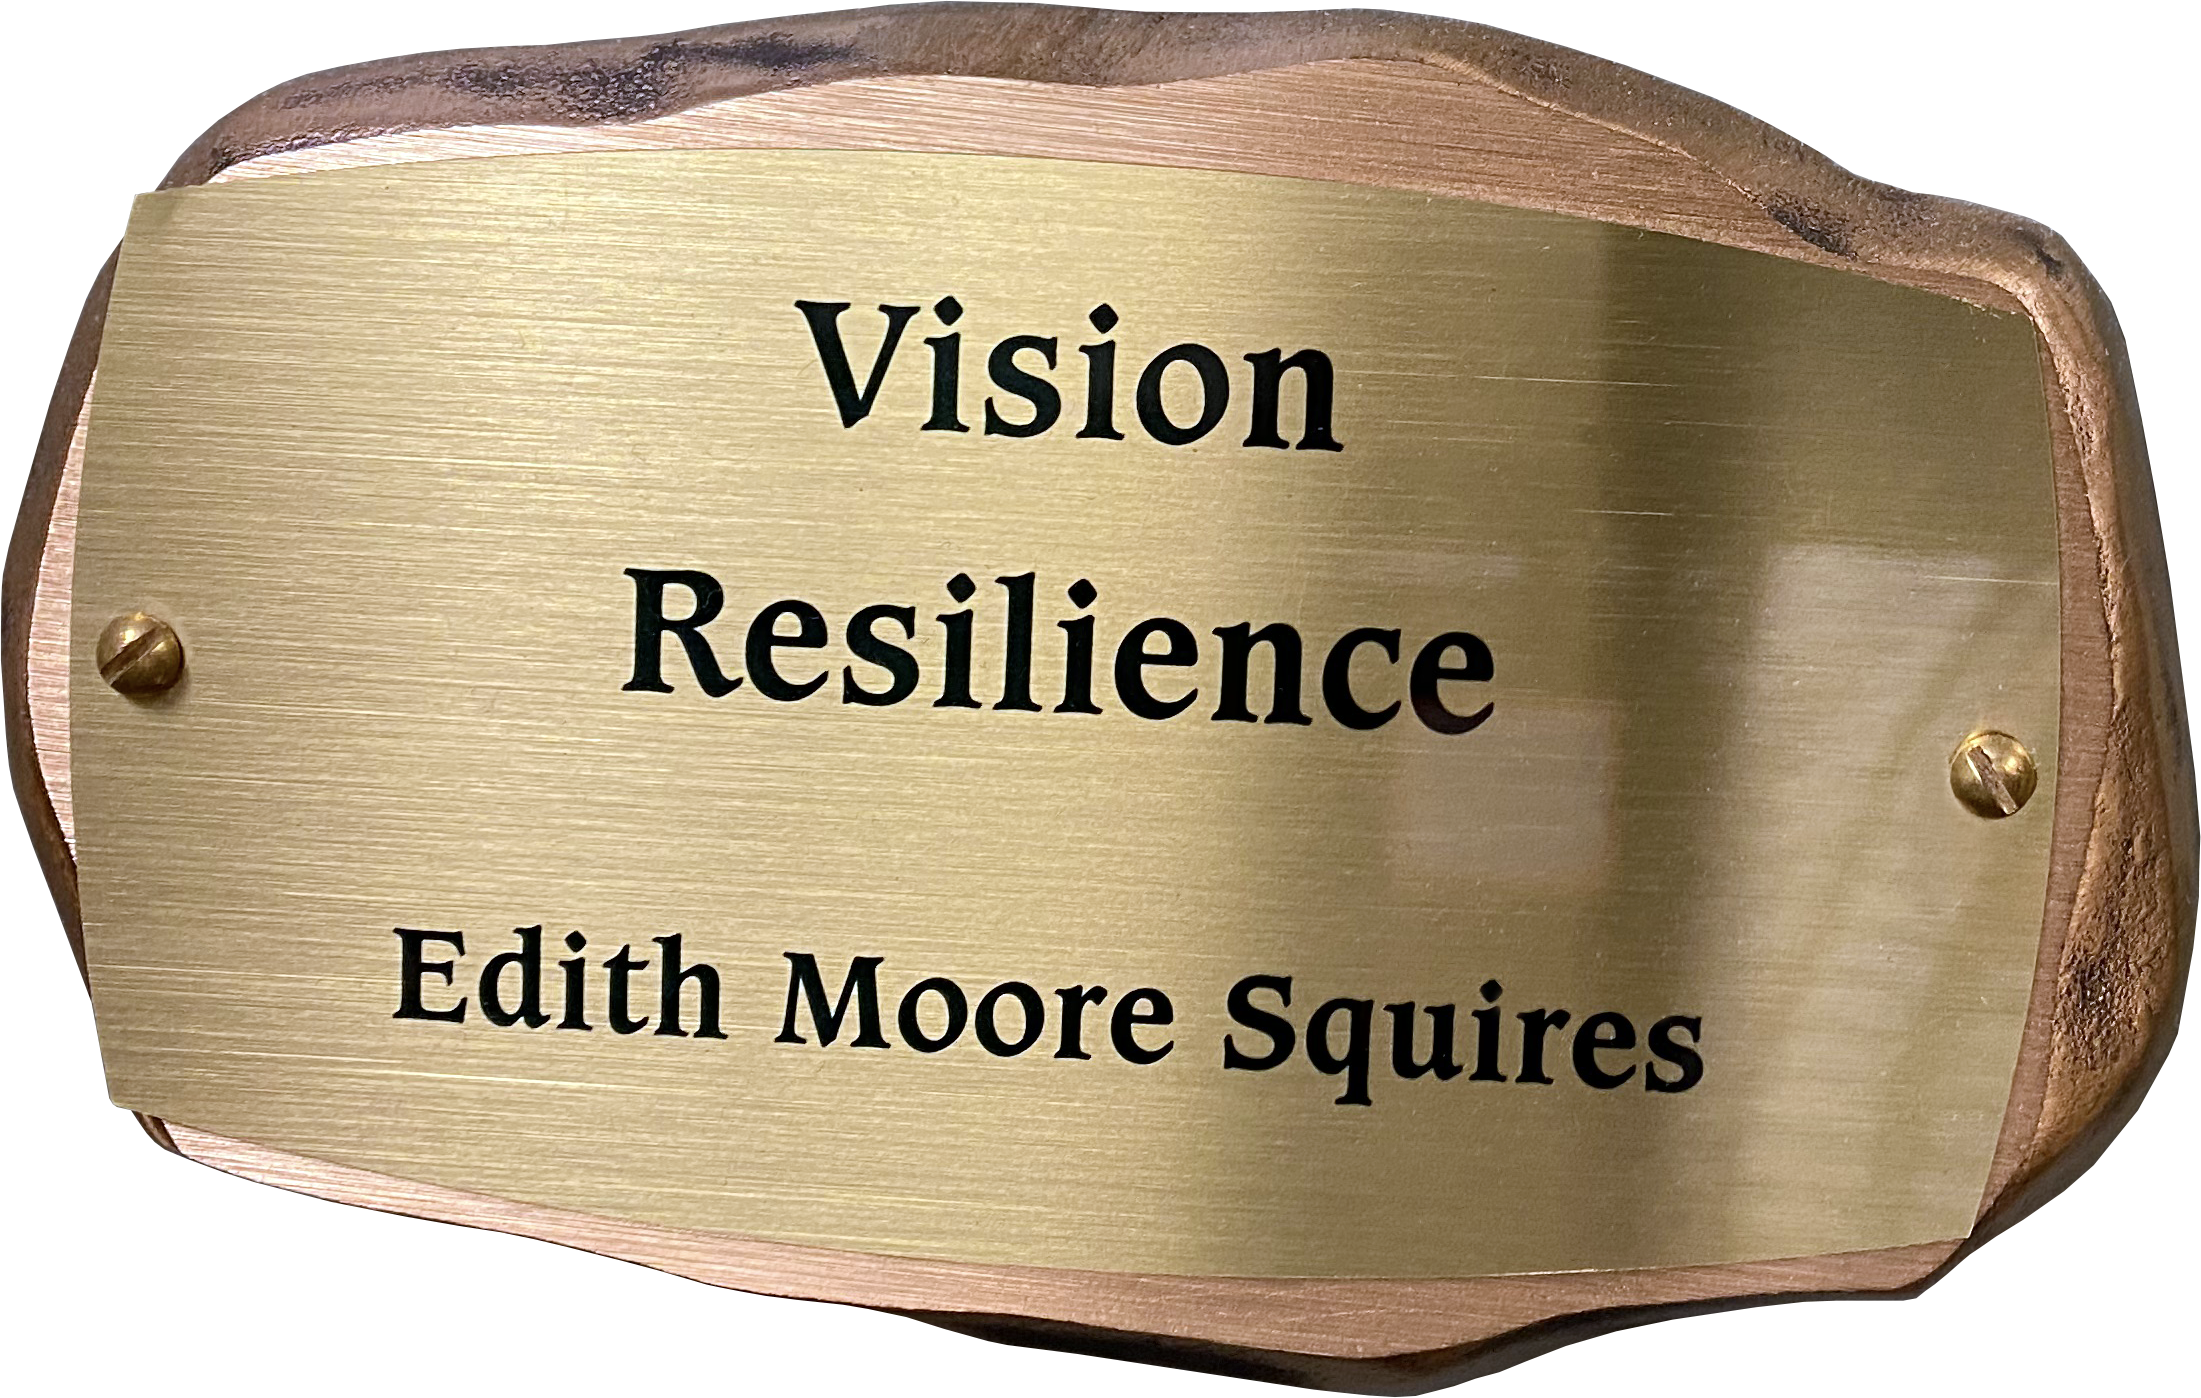 Inscribed bronze plaque in the shape of a rock with text on it reading: Vision, Resilience. Edith Moore Squires